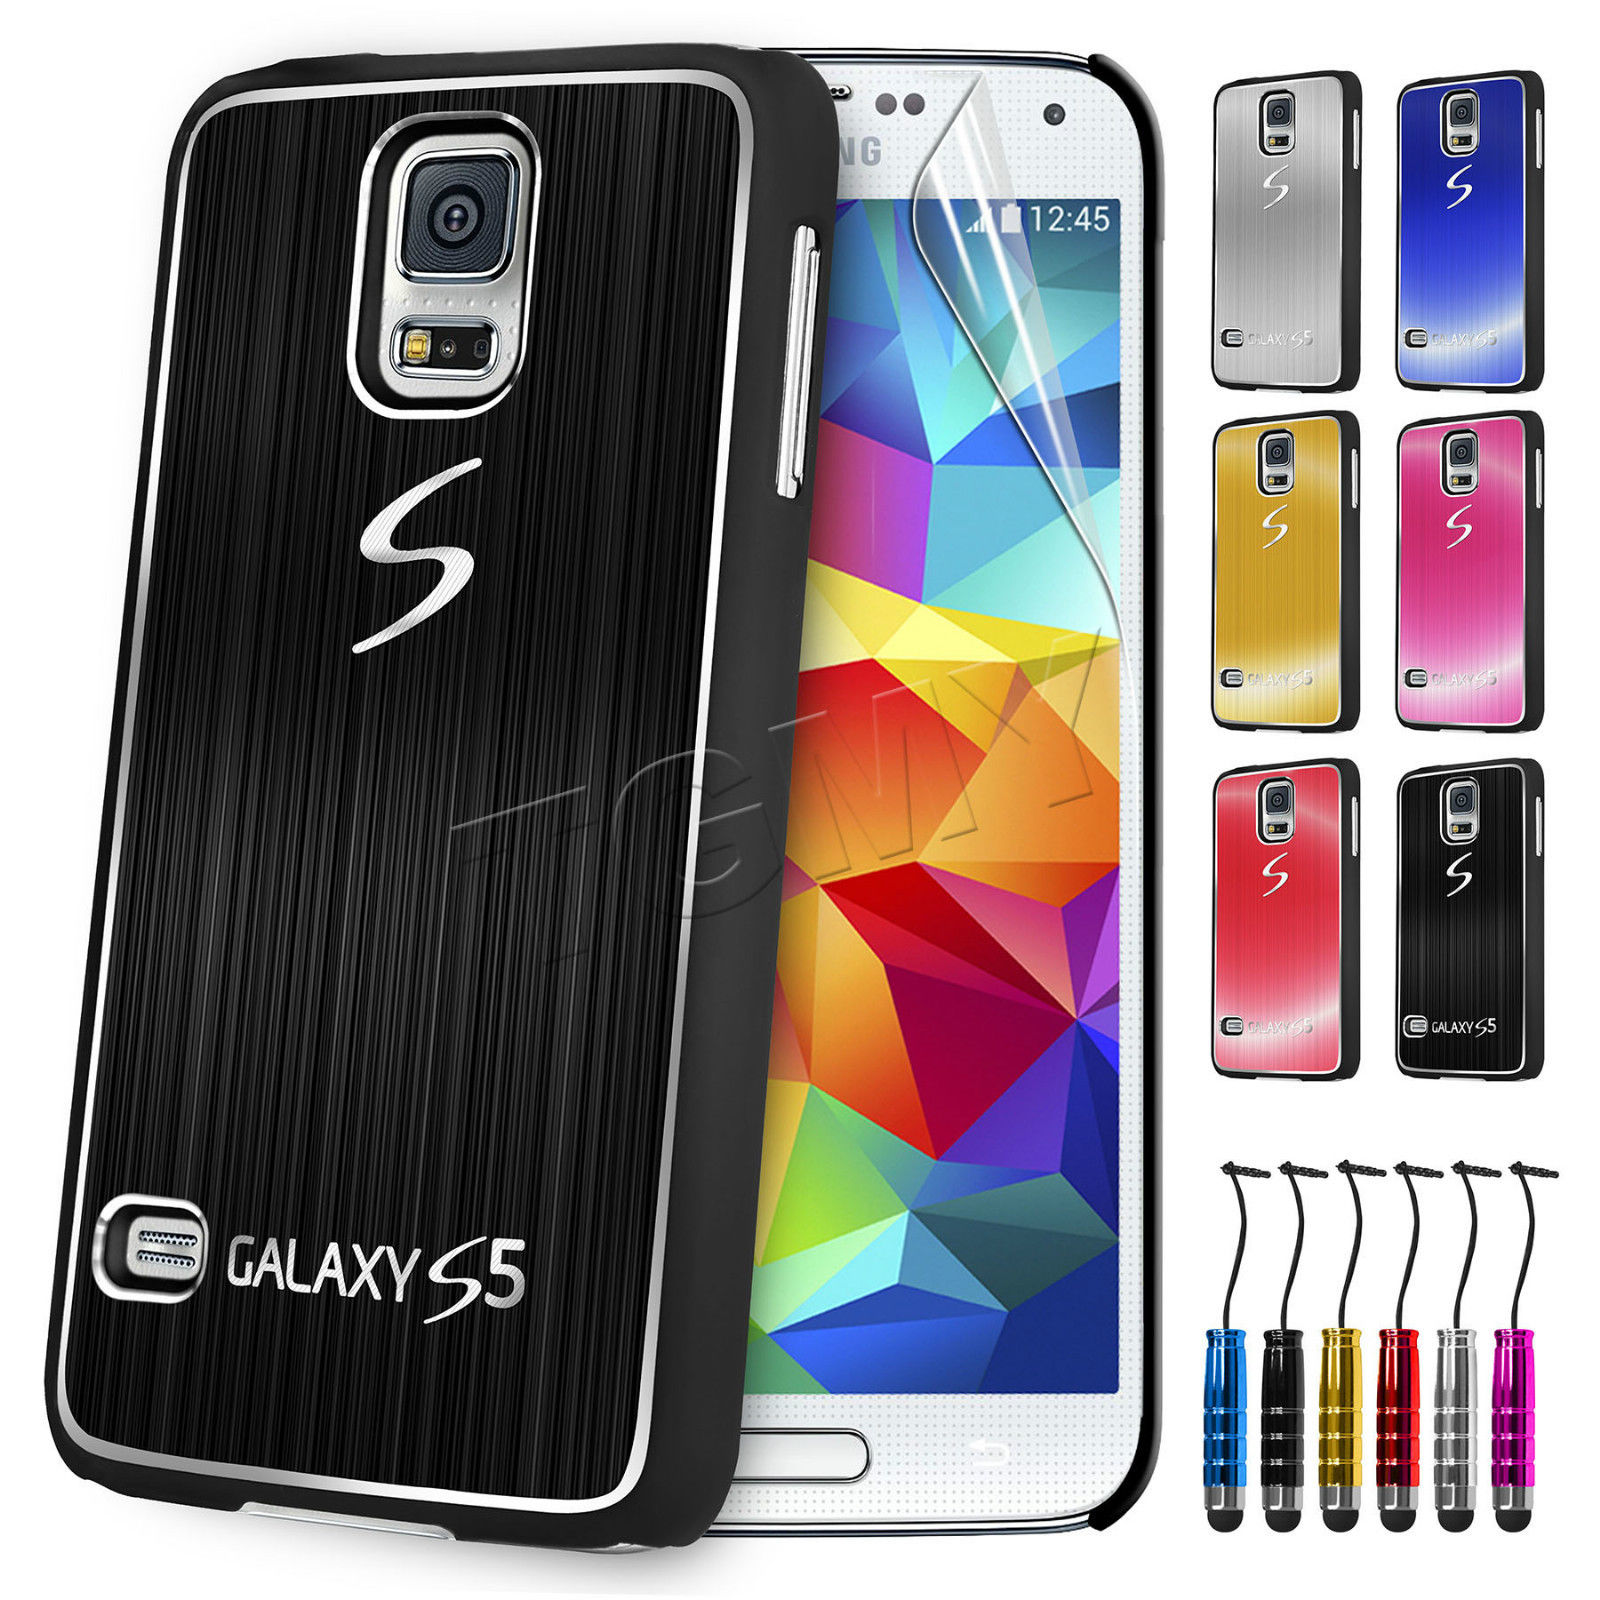 carcasa samsung galaxy mini 2